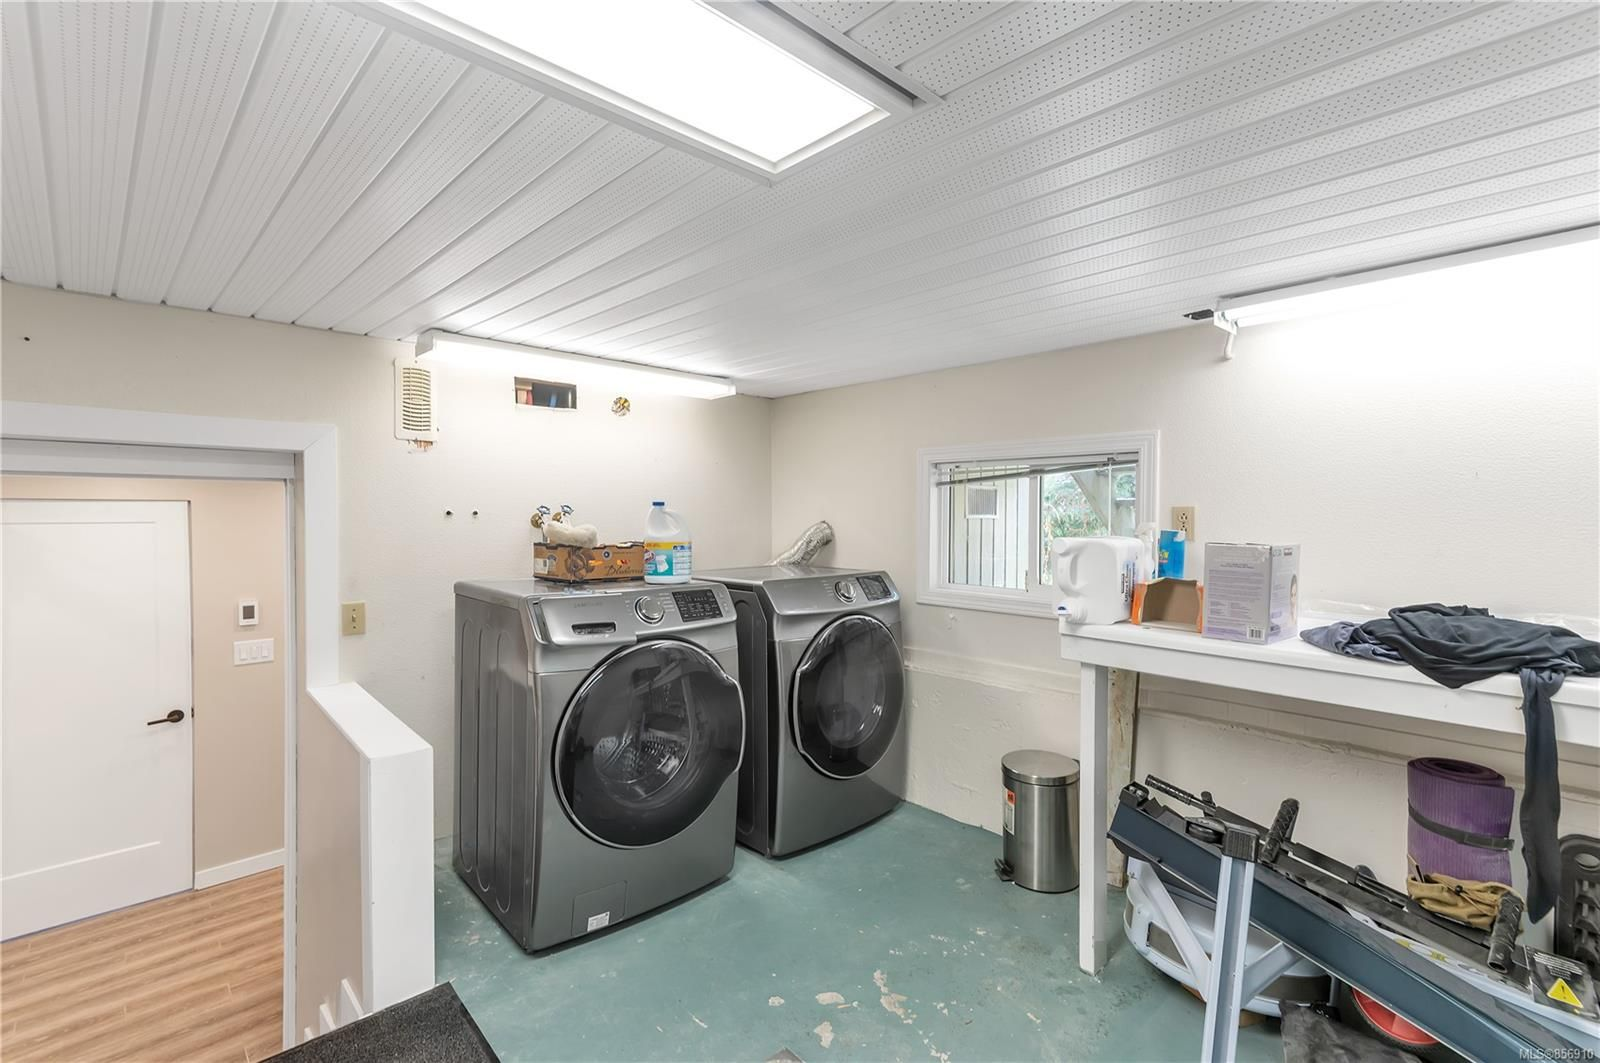 Photo 41: Photos: 215 S Alder St in : CR Campbell River Central House for sale (Campbell River)  : MLS®# 856910